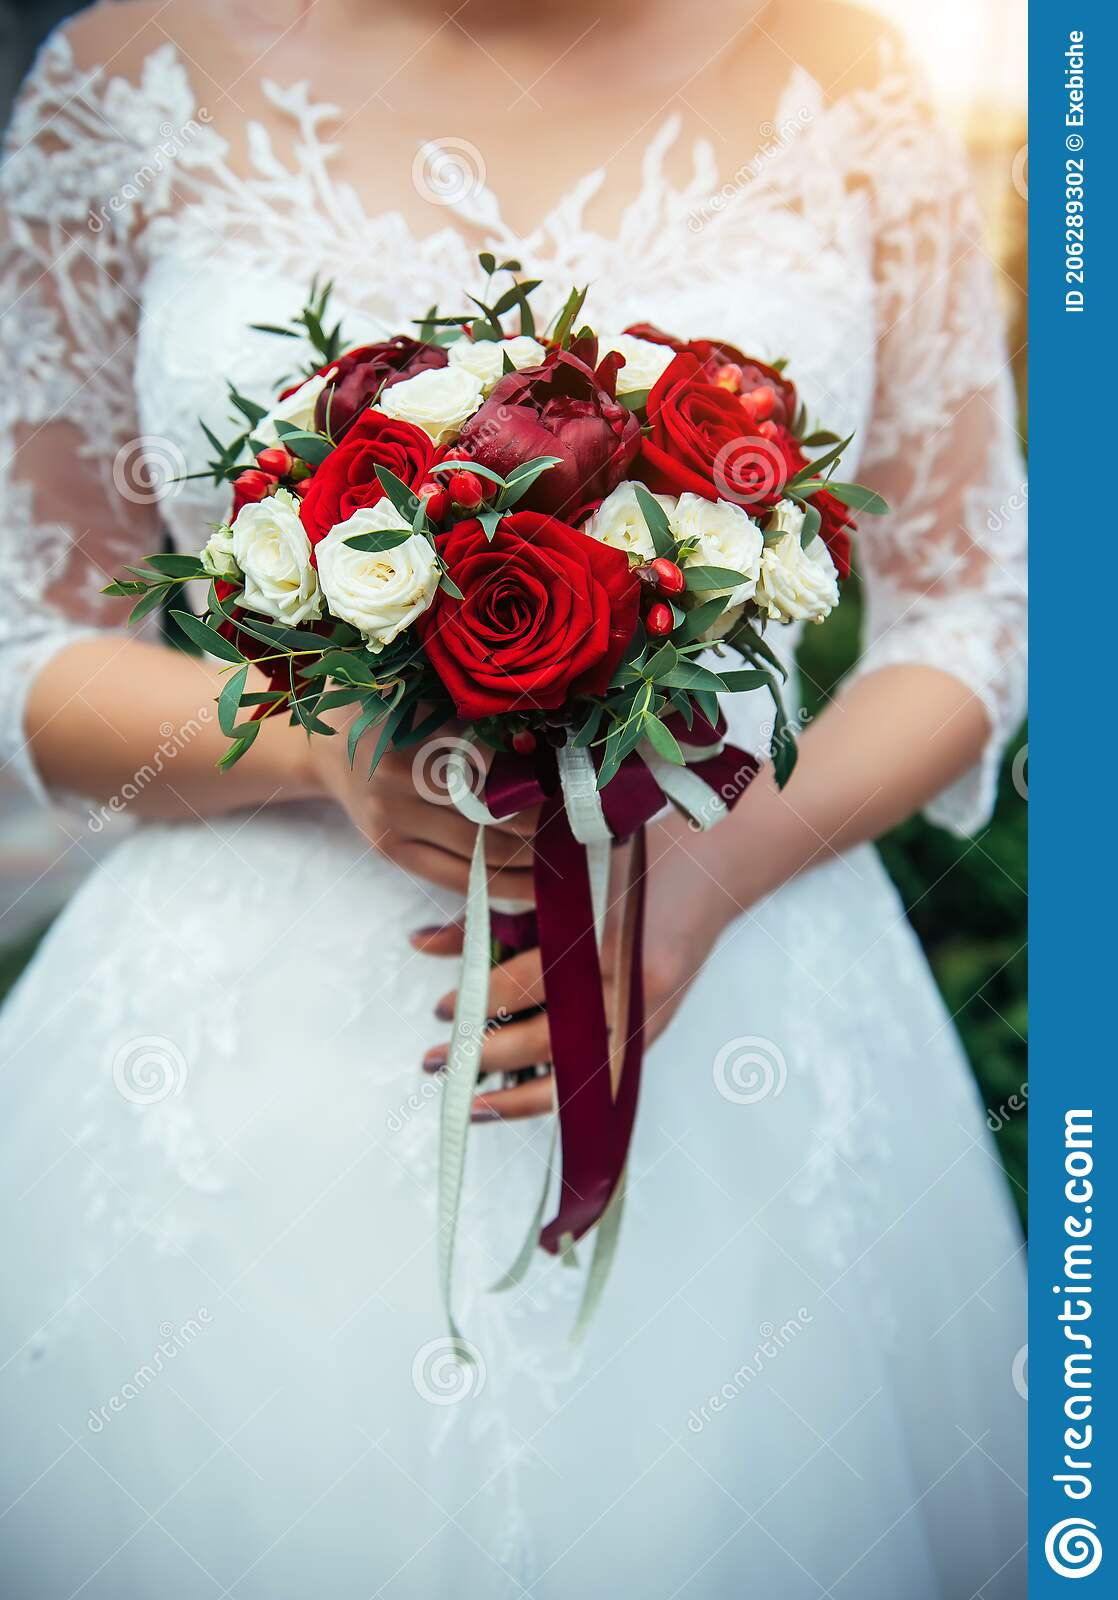 28 546 Bouquet Bride Red Photos Free Royalty Free Stock Photos From Dreamstime